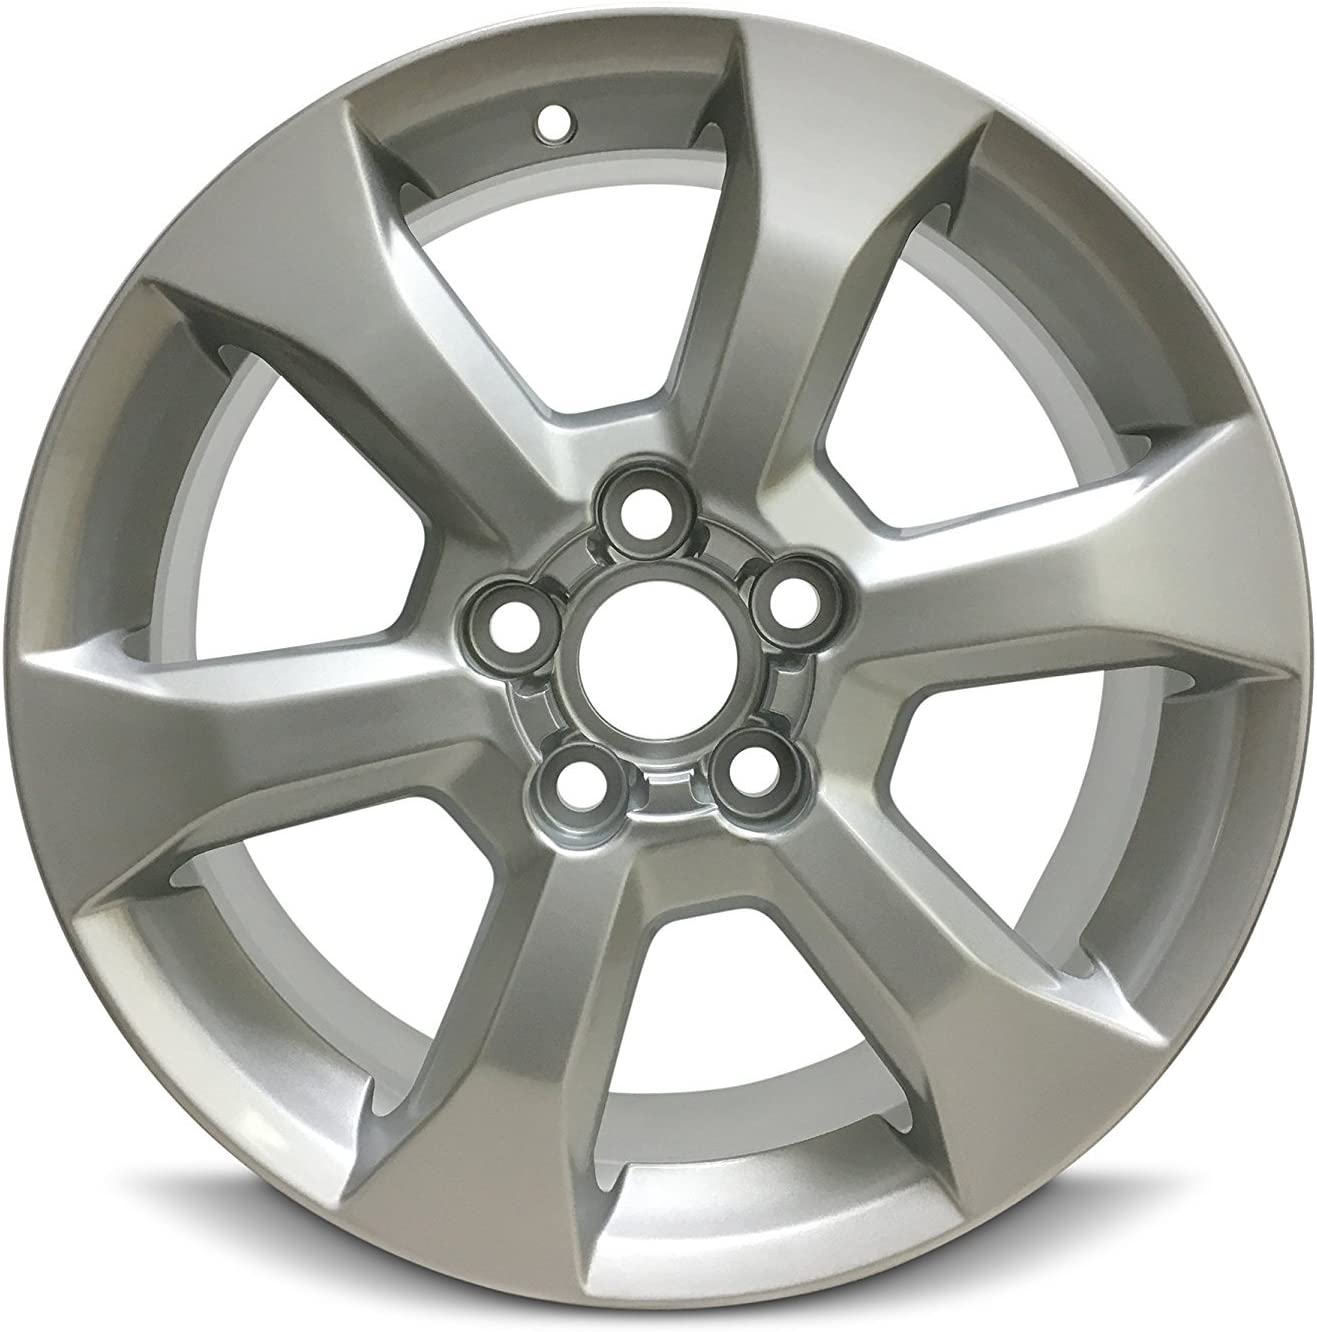 Exact OEM Replacement Full-Size Spare Road Ready Car Wheel For 2006-2012 Toyota Rav4 17 Inch 5 Lug Gray Steel Rim Fits R17 Tire